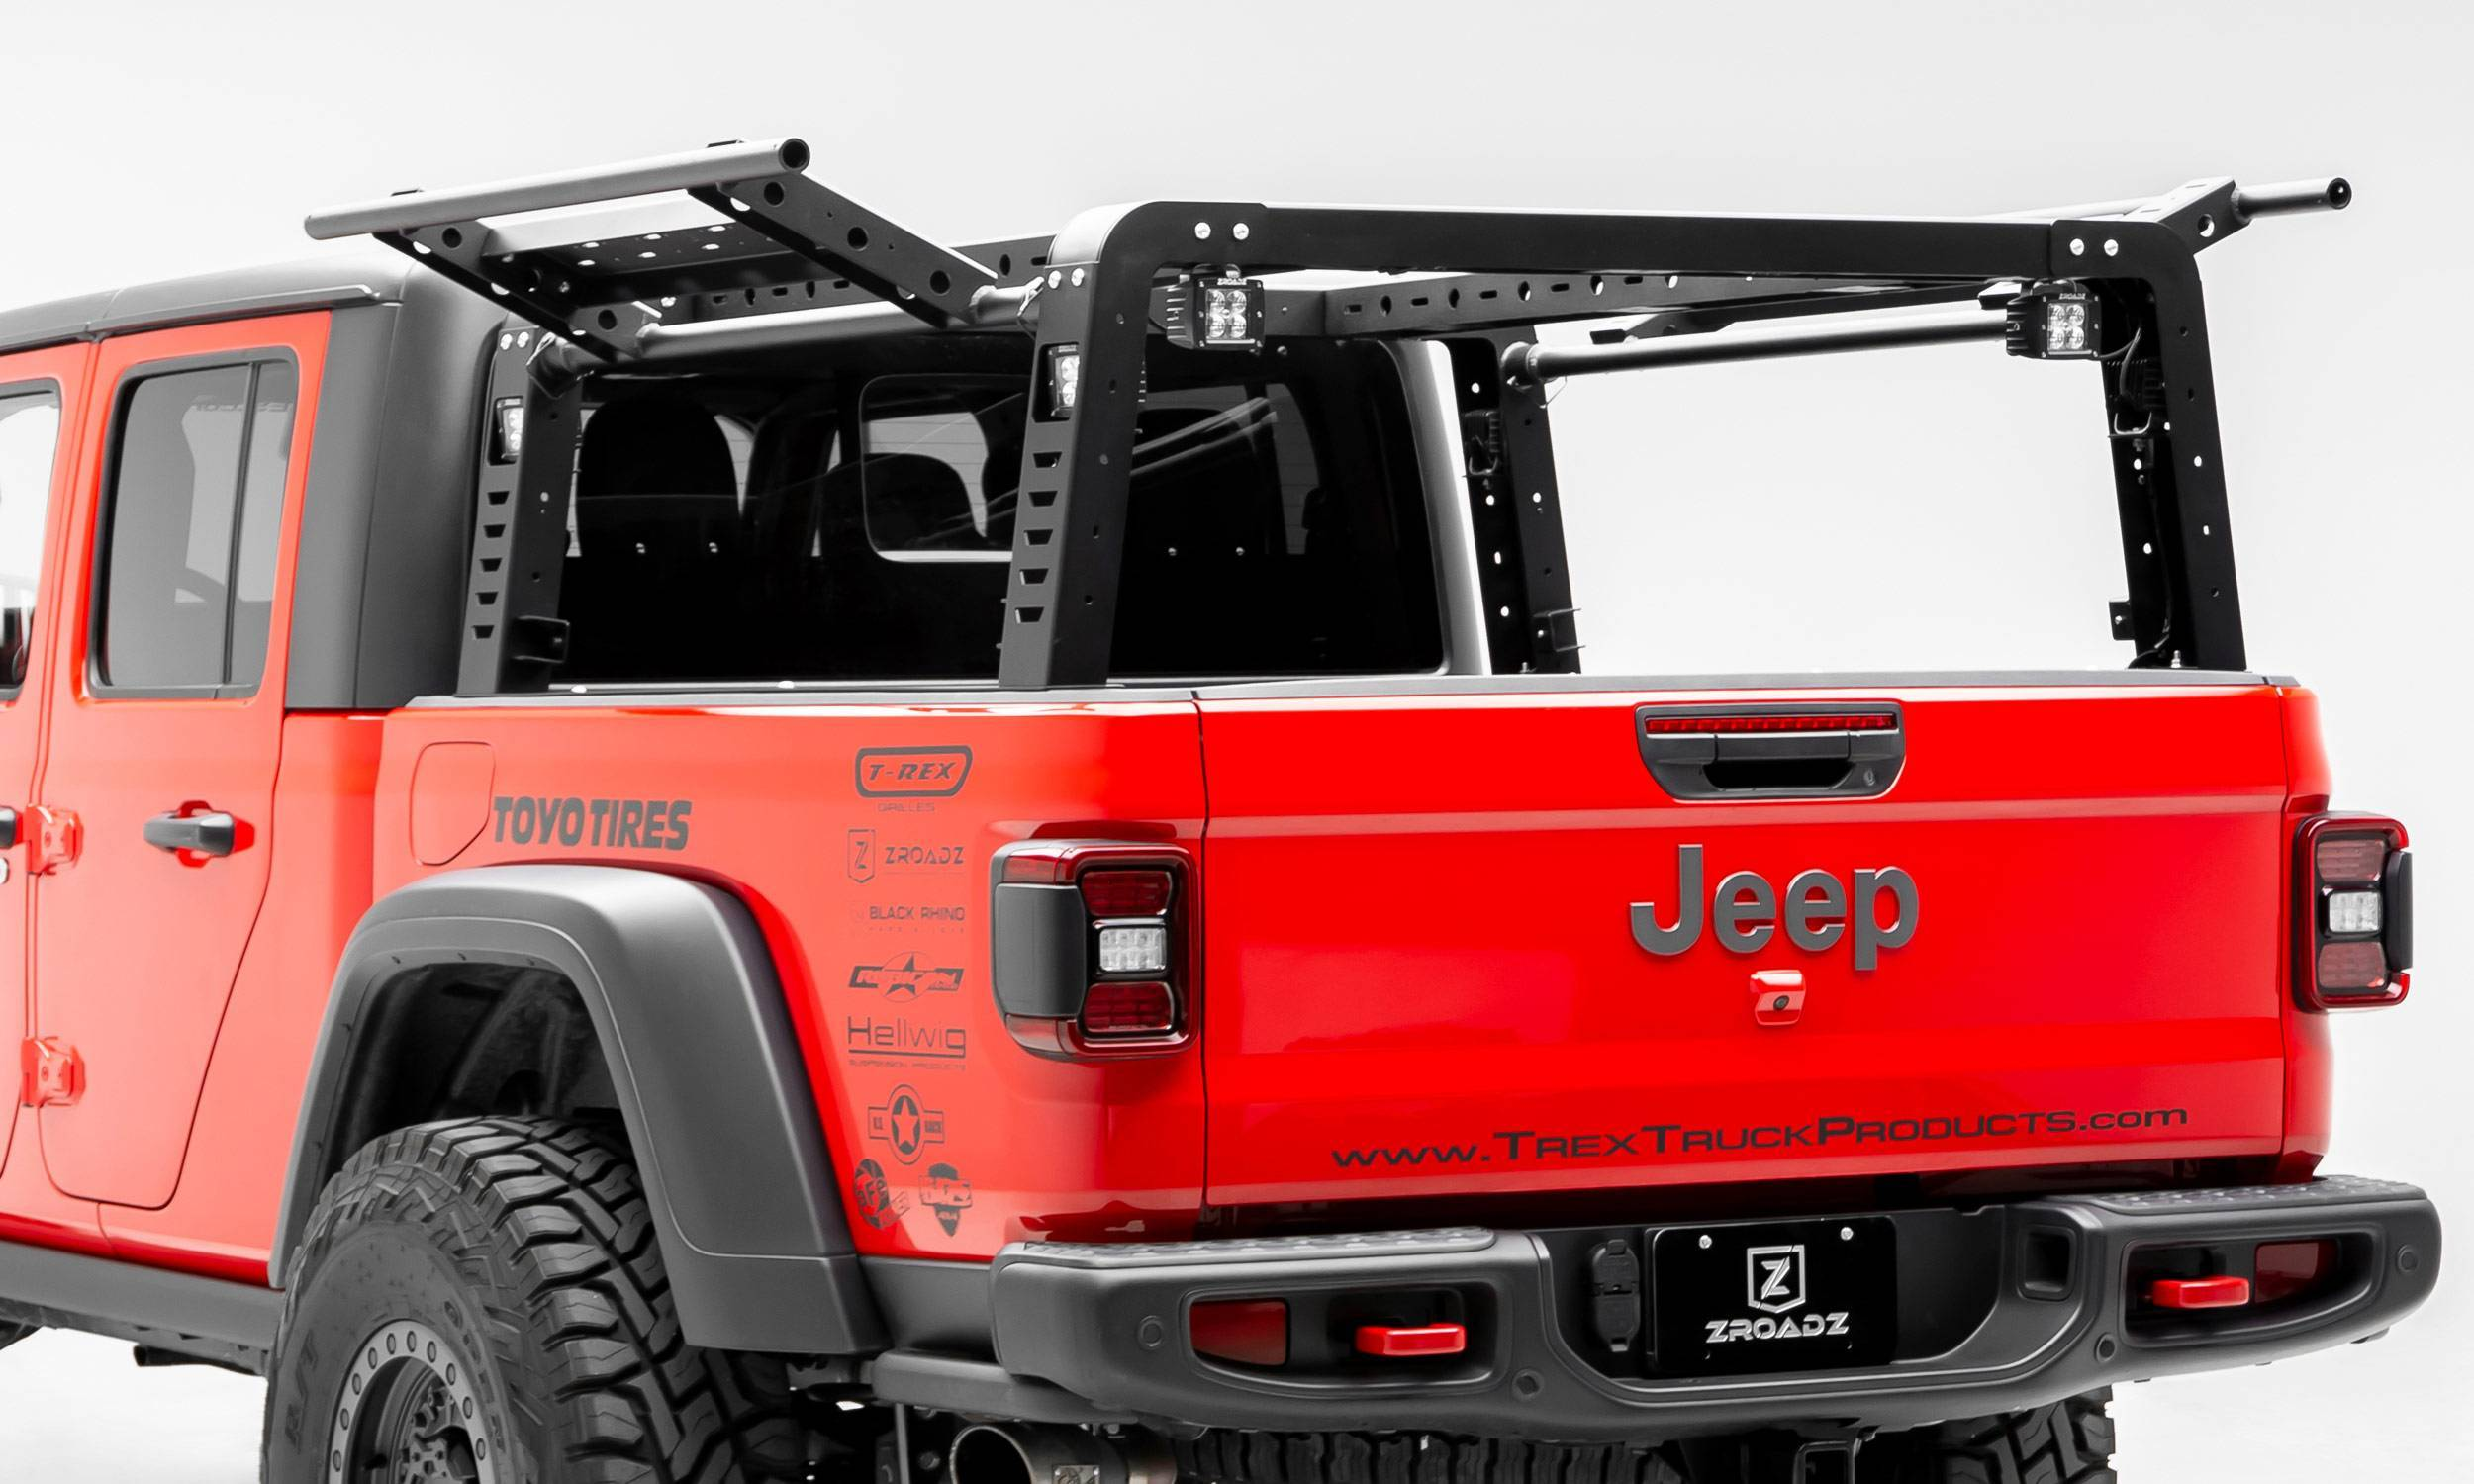 ZROADZ OFF ROAD PRODUCTS - 2019-2021 Jeep Gladiator Overland Access Rack With Two Lifting Side Gates, Without Factory Trail Rail Cargo System - PN #Z834101